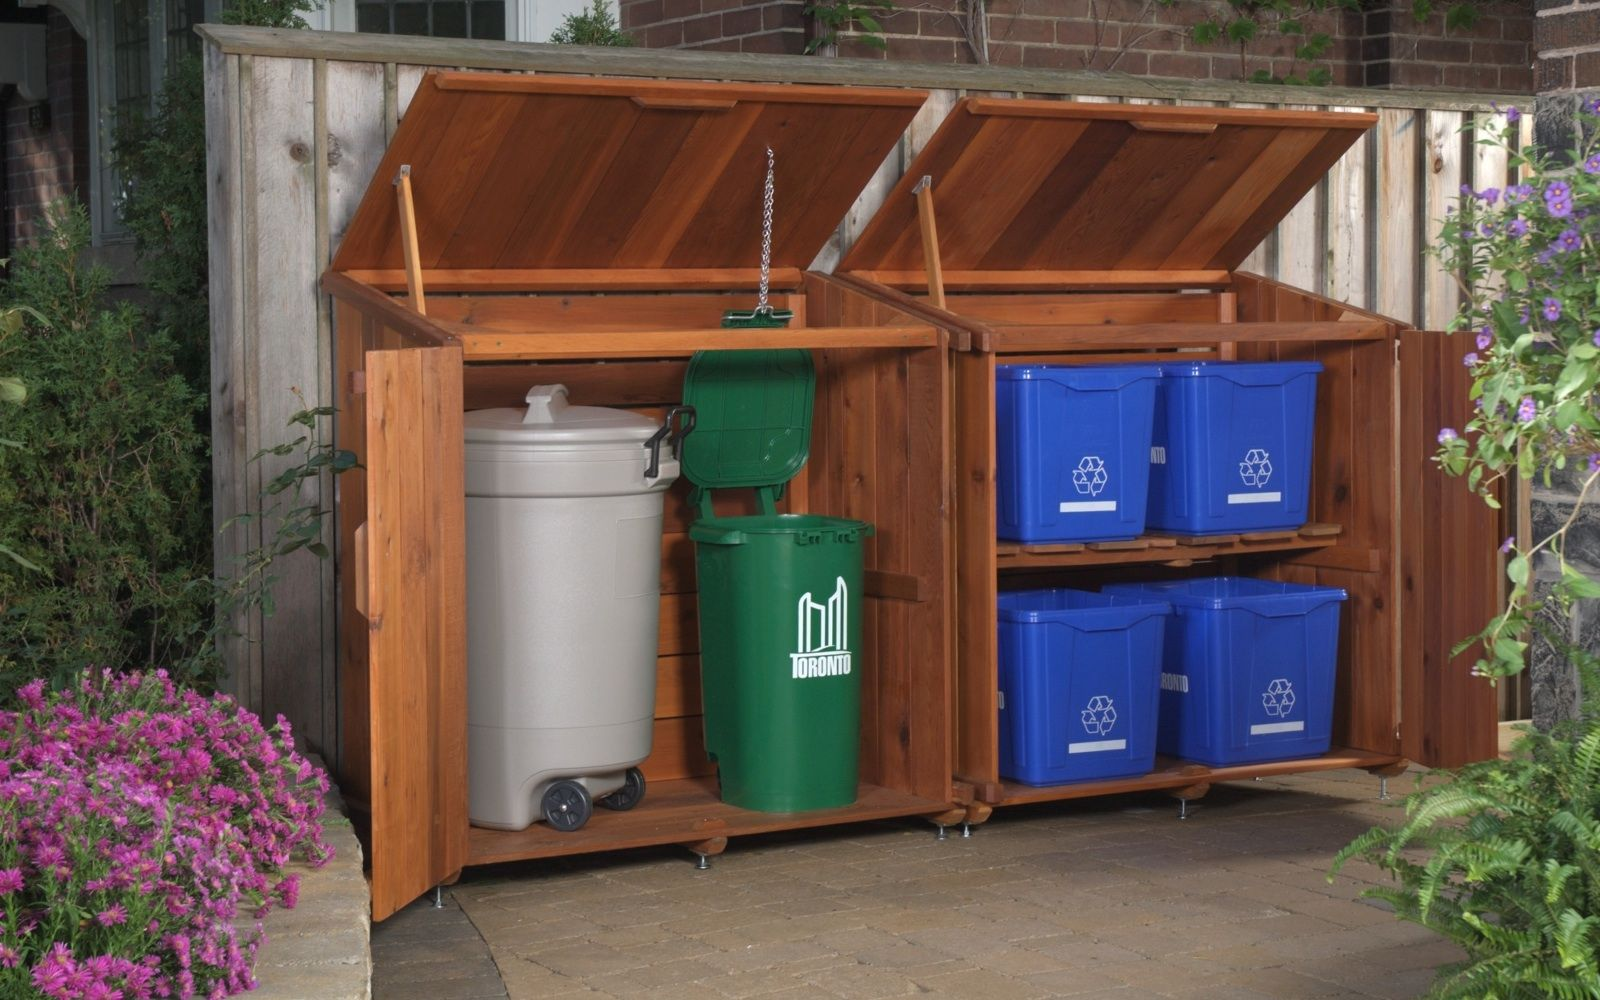 Marvelous Garbage Storage #10 - Outdoor Recycling And Trash Storage Solution - I Like This But With A Ramp  Of Some Sort And A Little Bigger For All Our Cans!